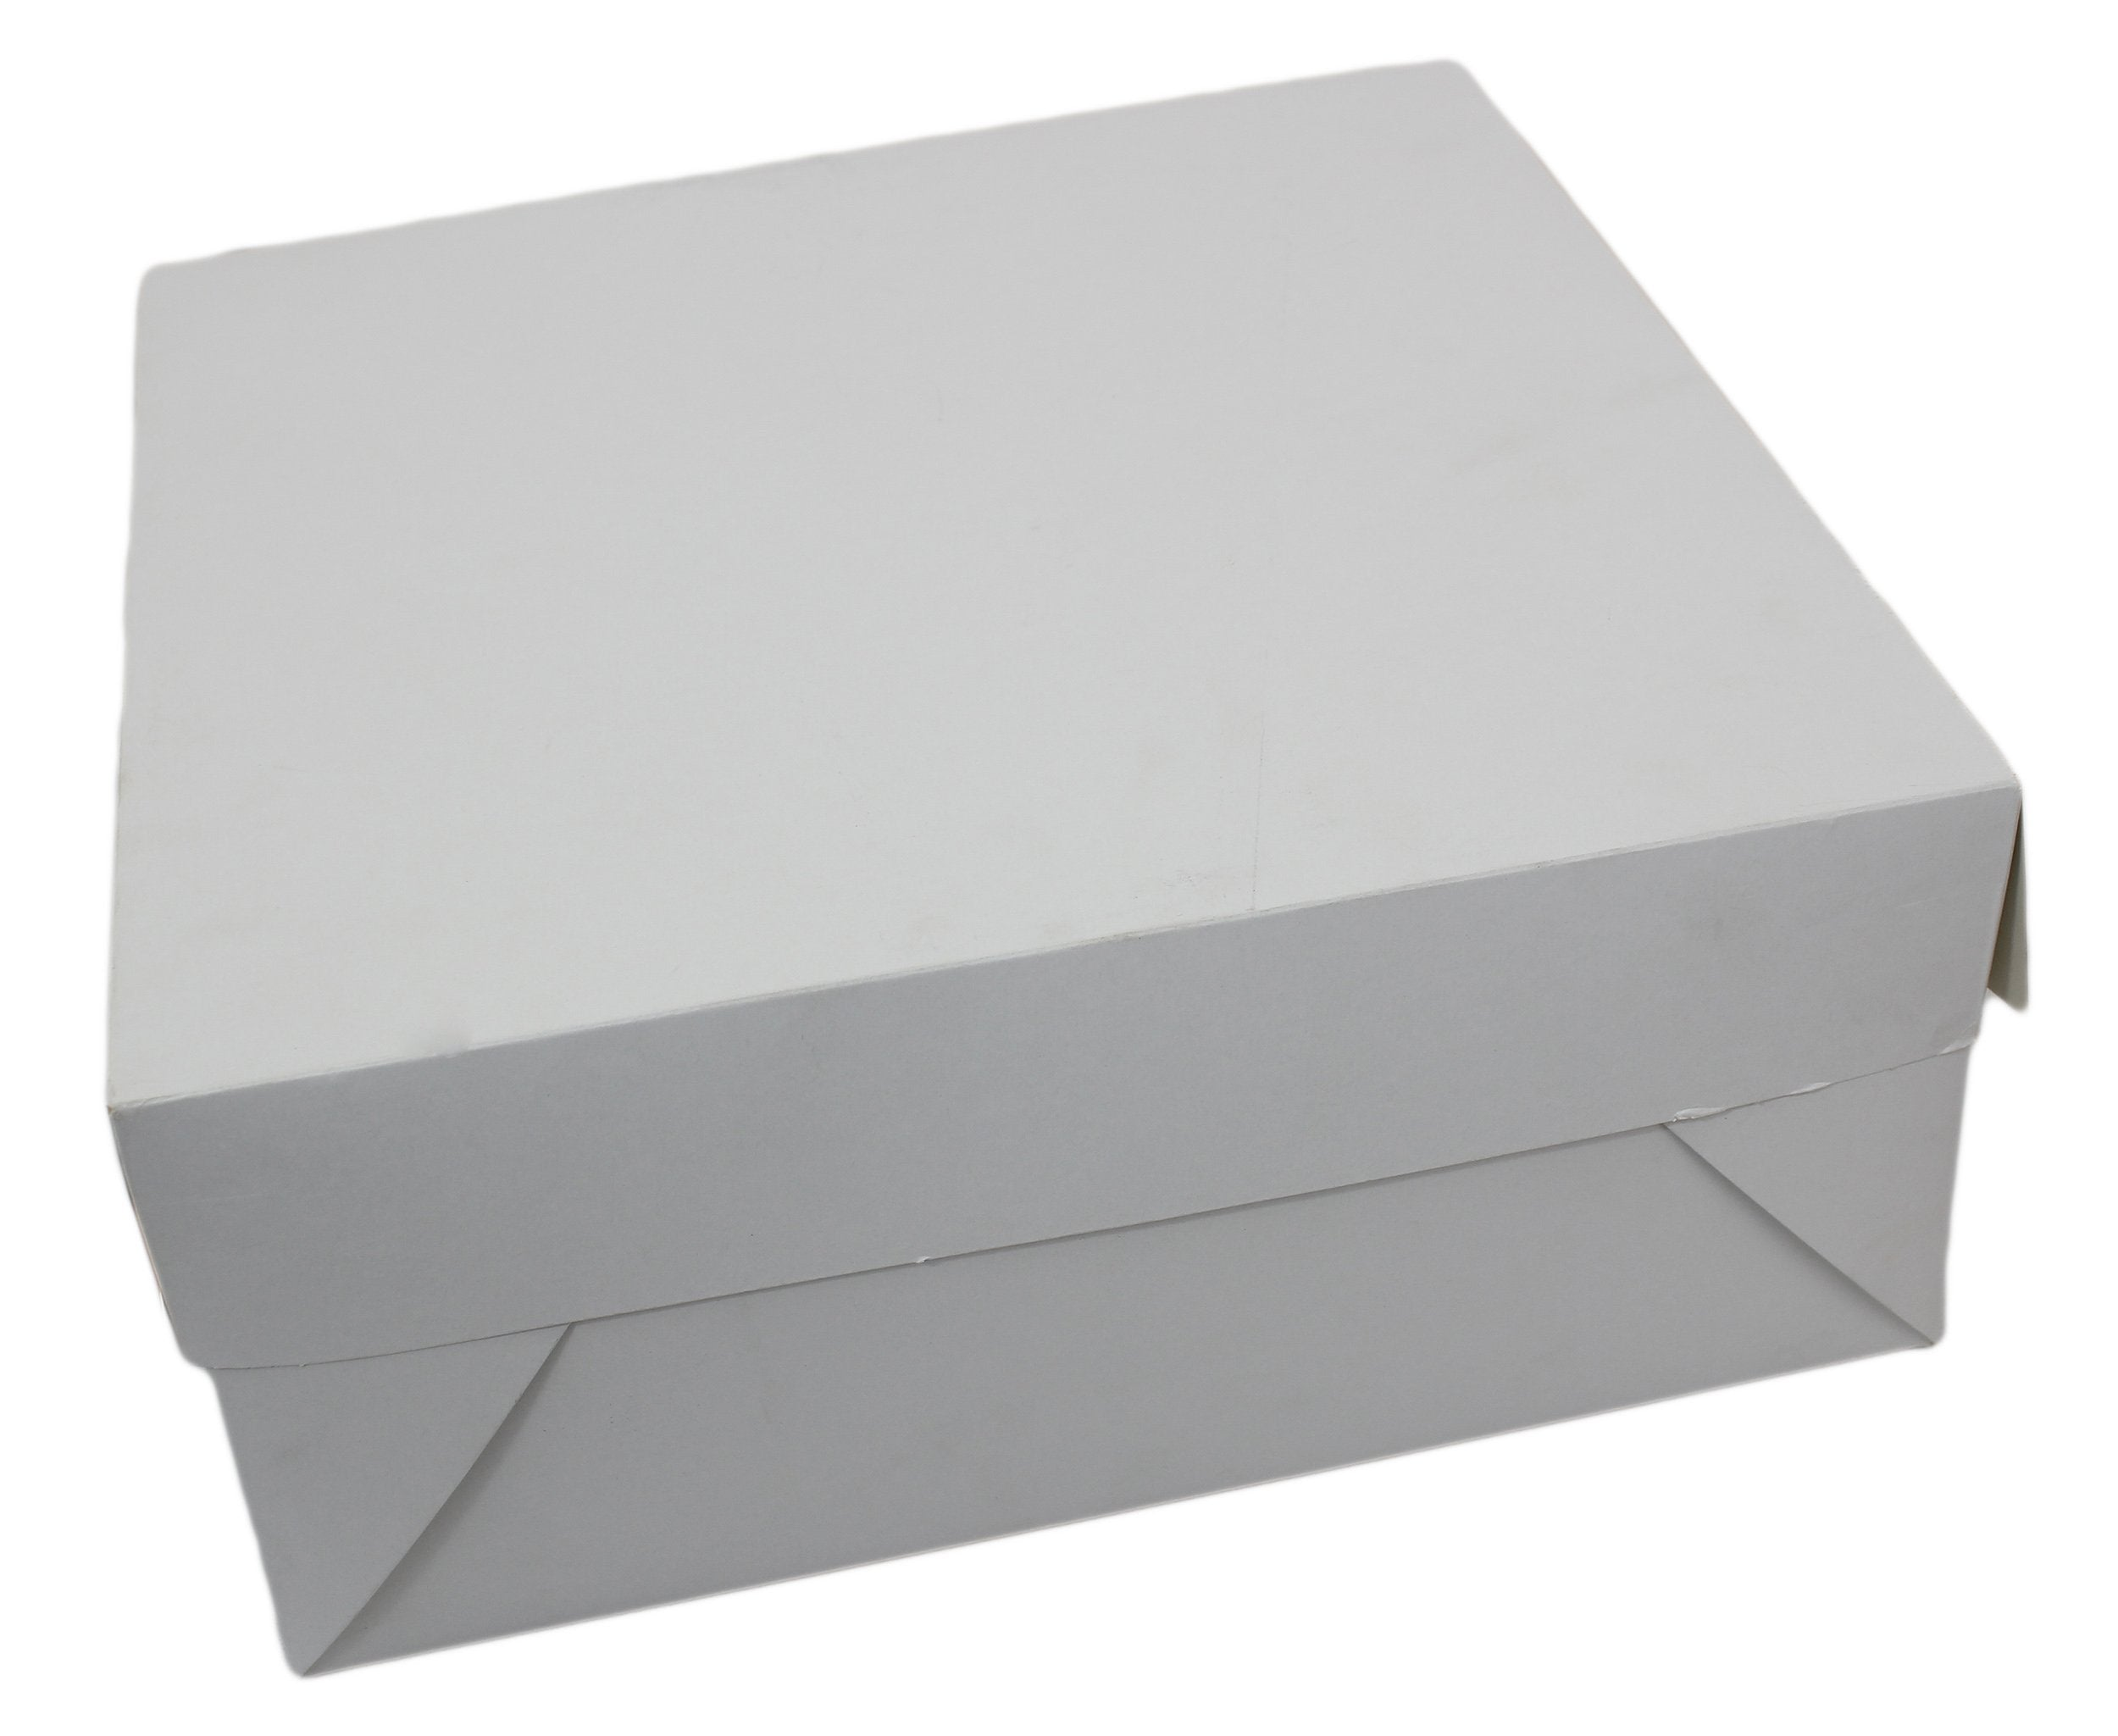 10x10x6'' Cake Boxes And Lids - Gafbros